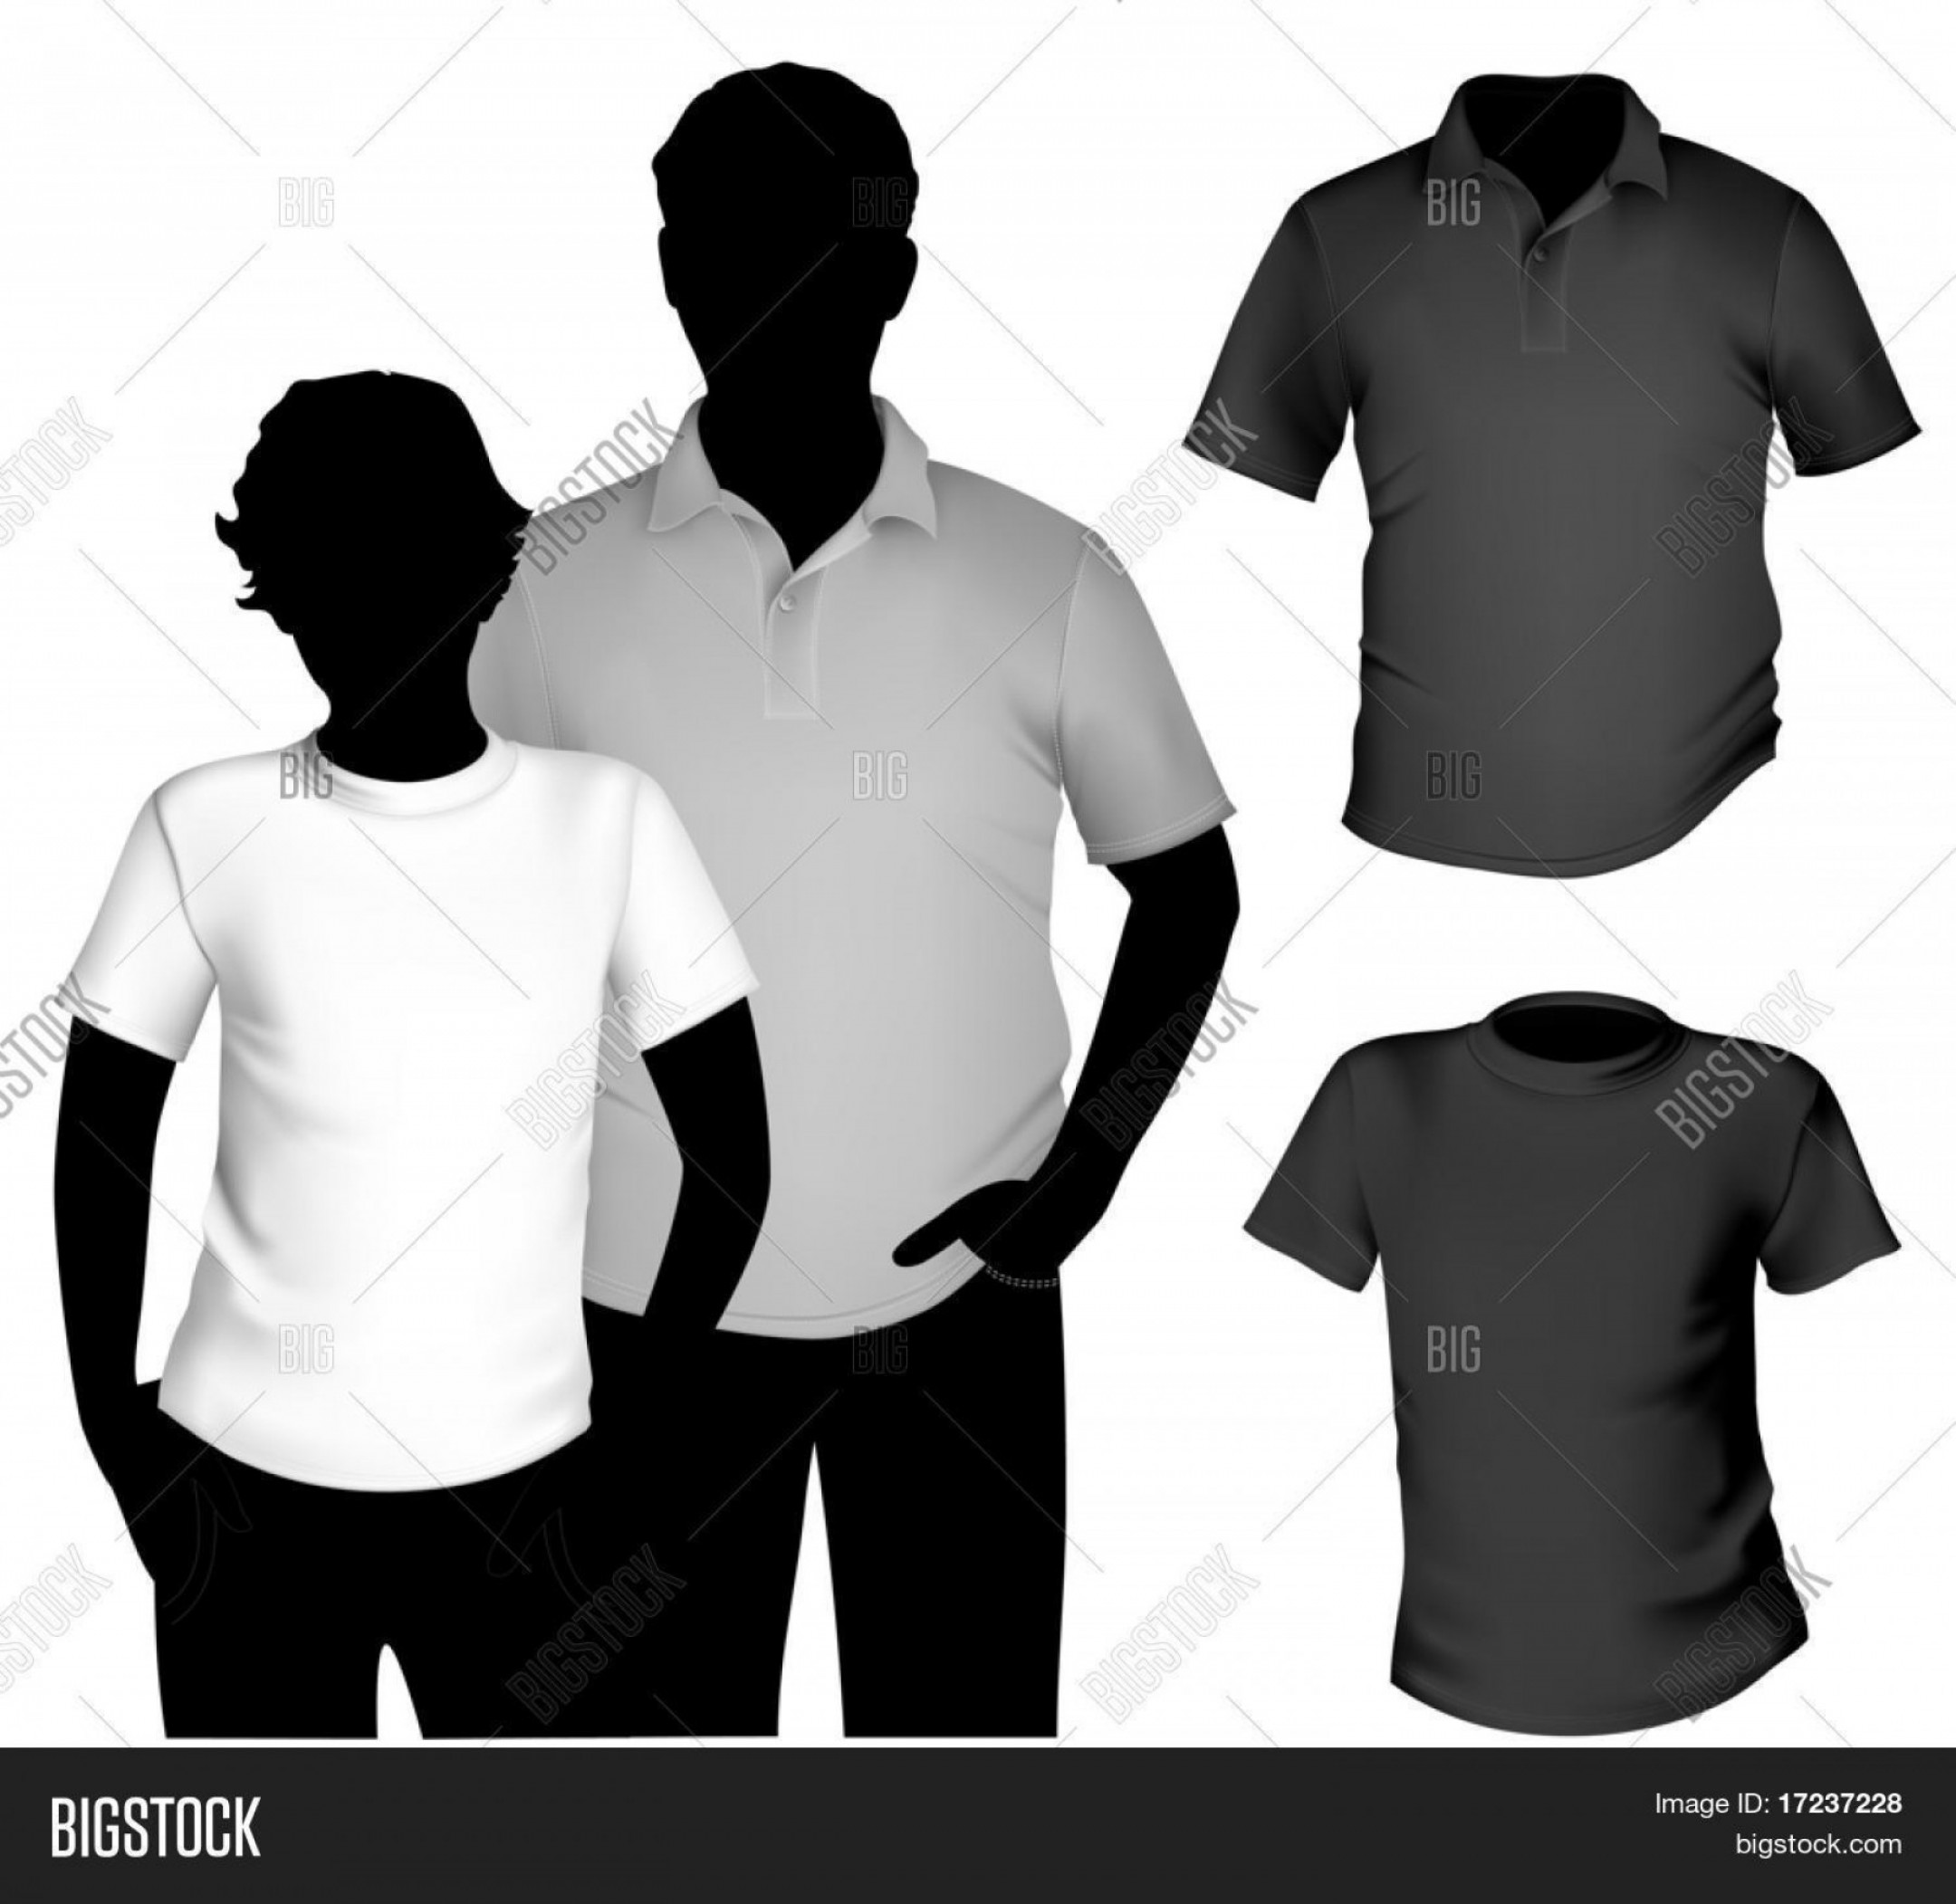 Vector Woman Black Crew Shirt: Stock Vector Vector Men S Black And White T Shirt And Polo Shirt Template With Human Body Silhouette